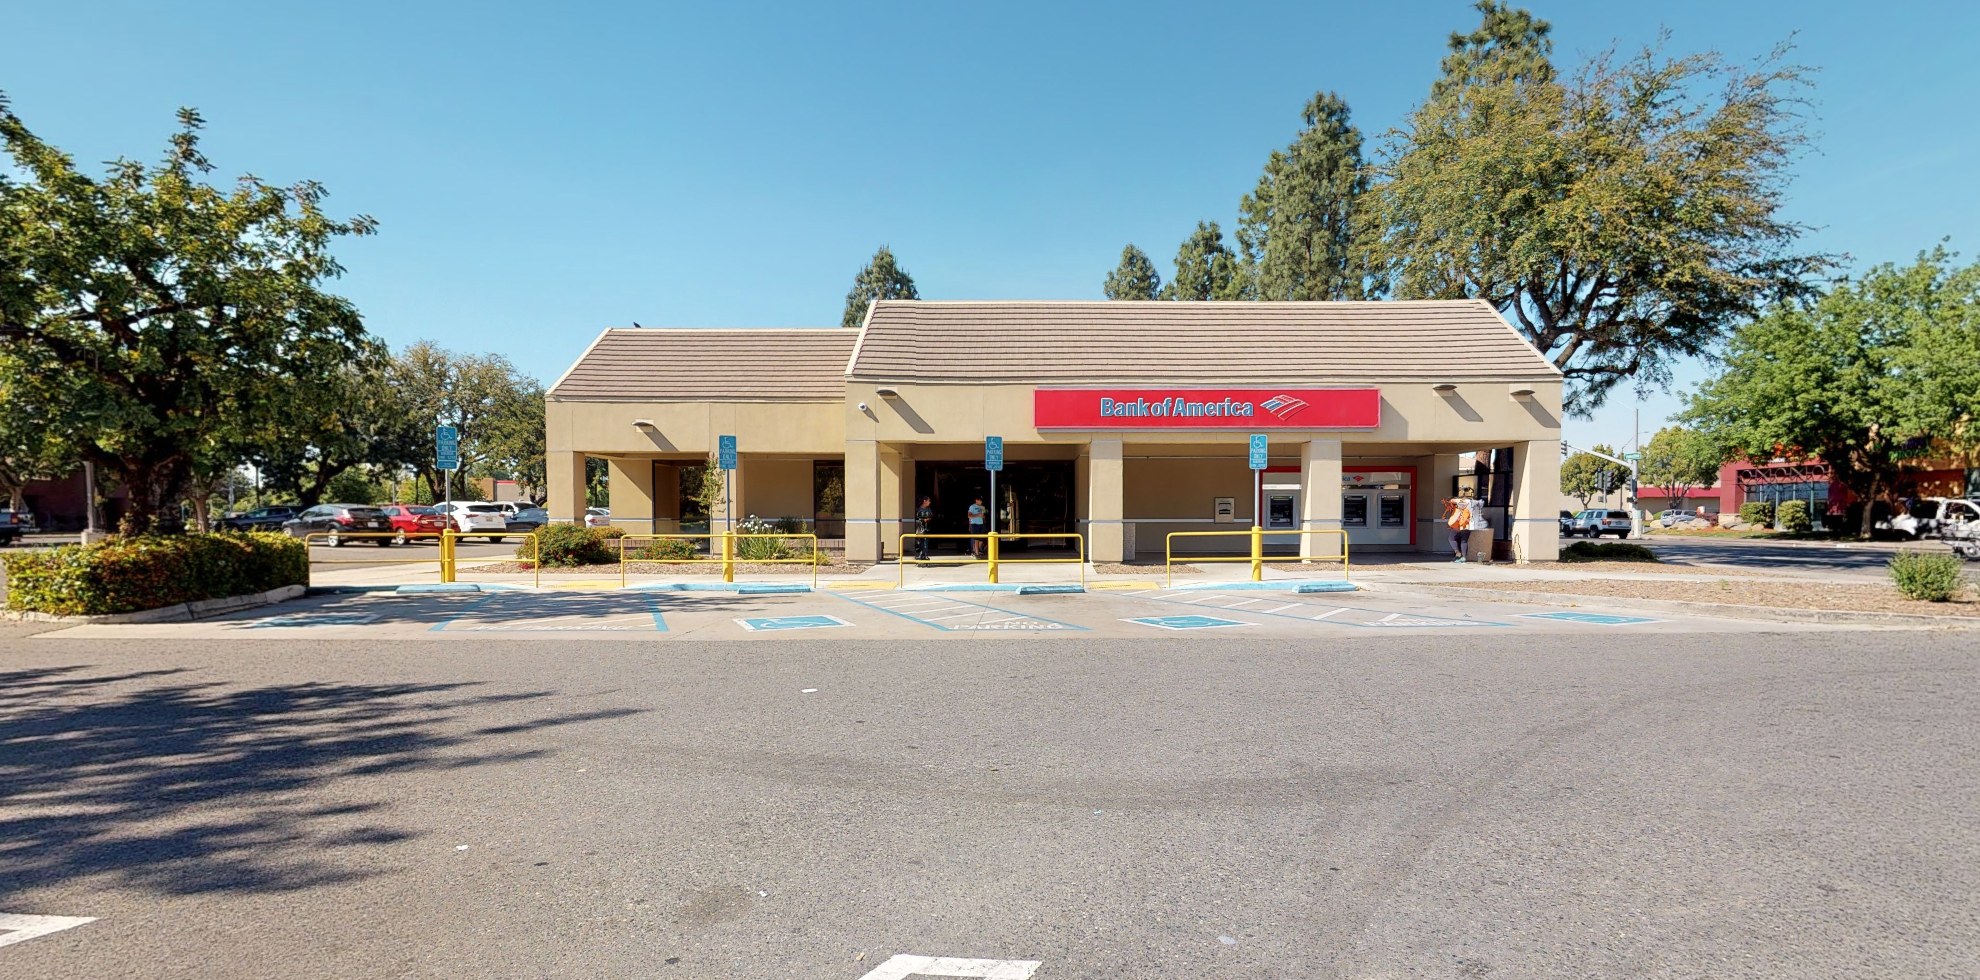 Bank of America financial center with walk-up ATM   3411 W Shaw Ave, Fresno, CA 93711